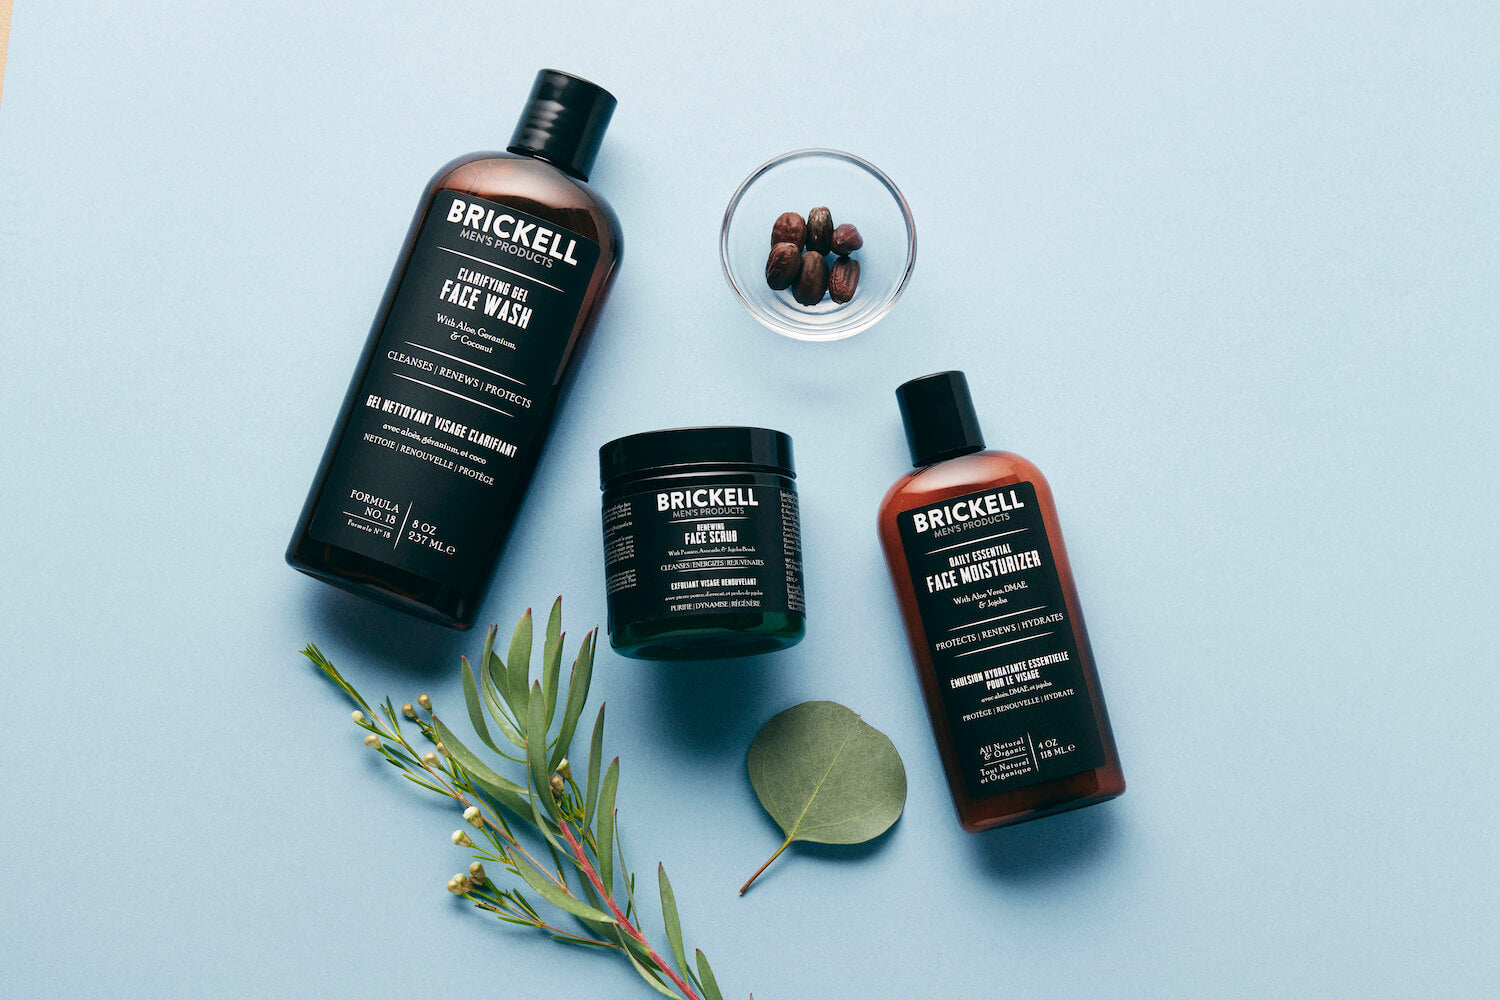 Skincare products for men made with antioxidants